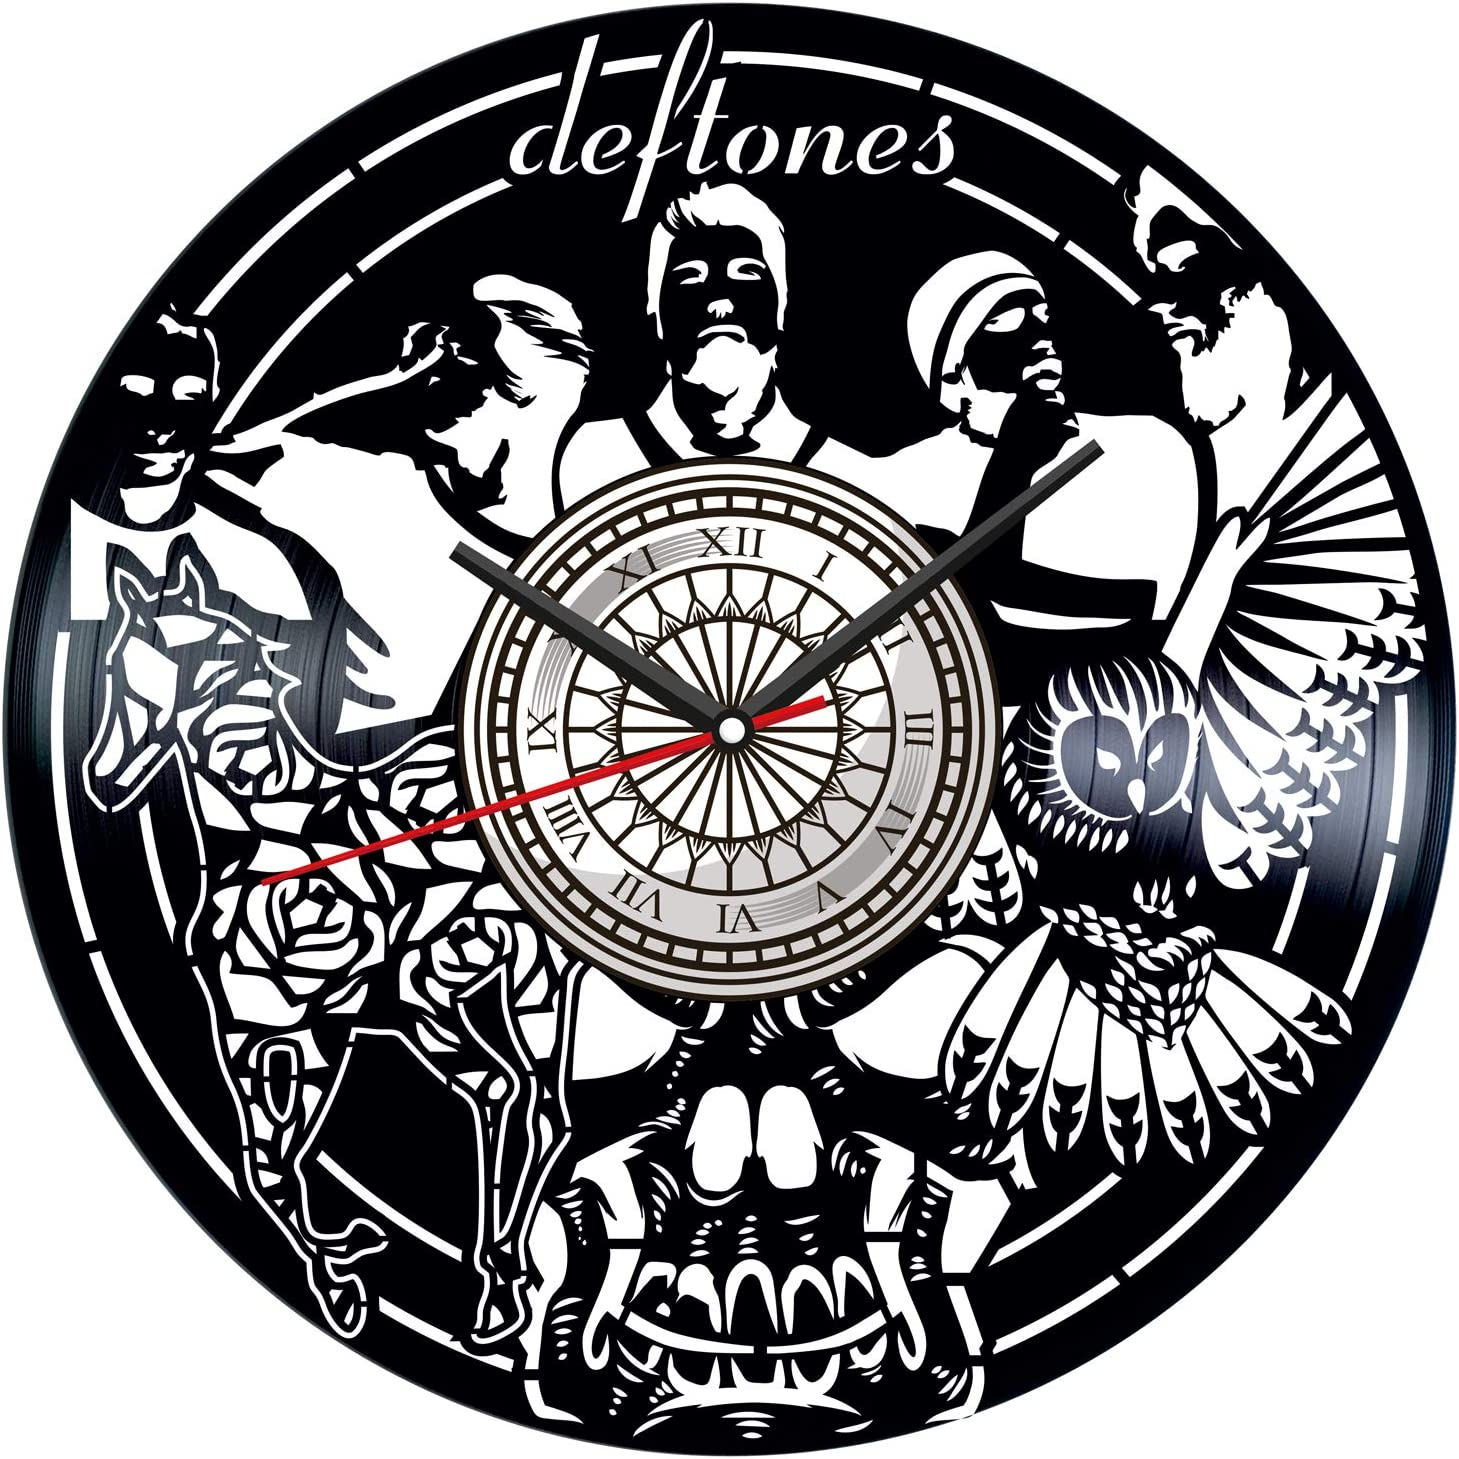 Deftones Band Vinyl Record Wall Clock Poster - Vintage Home Decor Kitchen Bedroom Living Room Office - Unique Handmade Gift for Men Woman Friends Boys - 12 inches